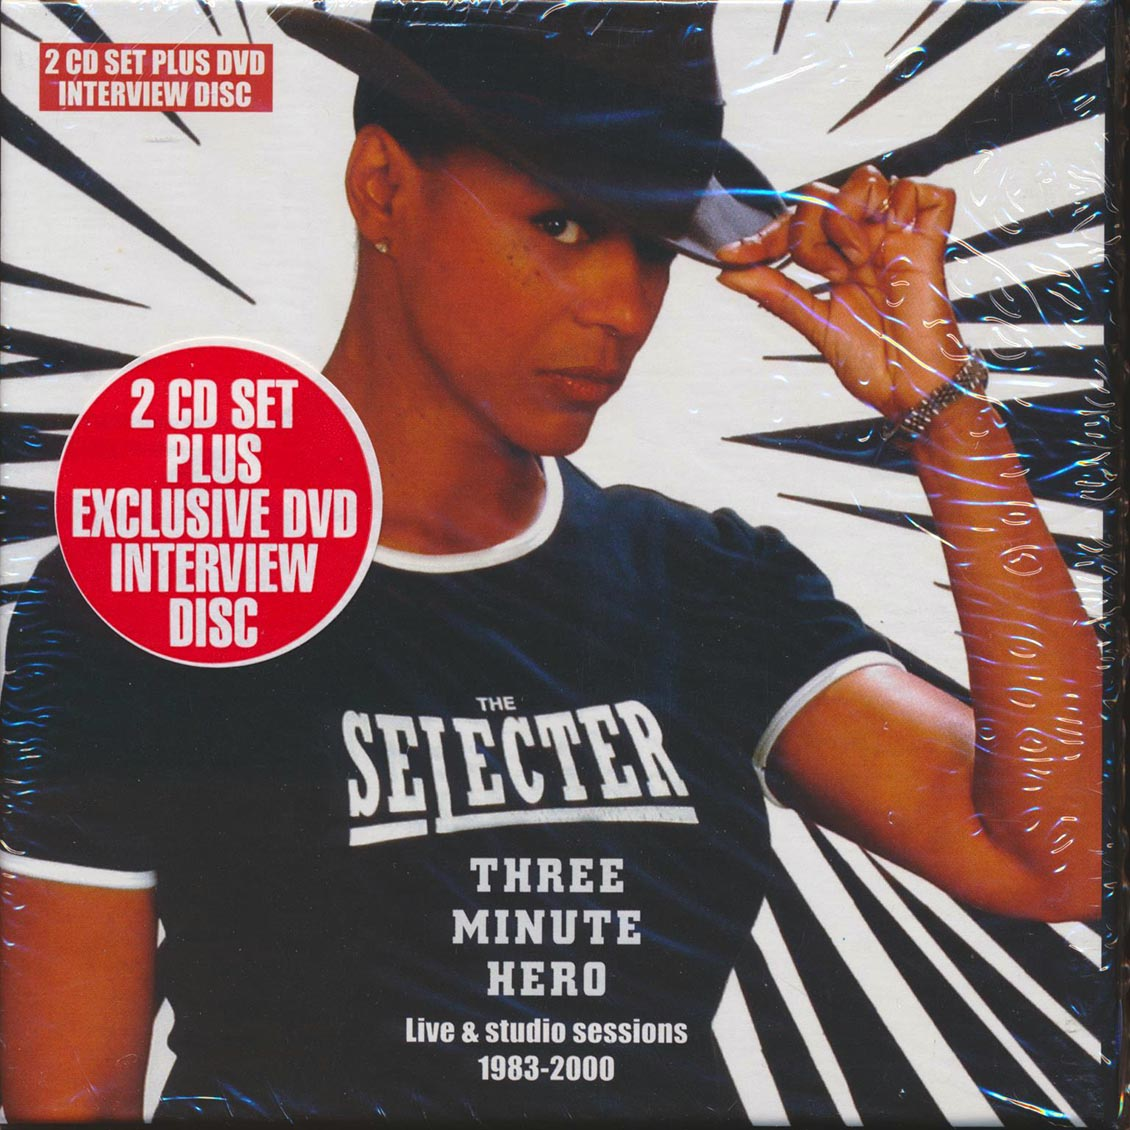 SELECTER, THE - Three Minute Hero: Live & Studio Sessions 1983-2000 - CD x 2